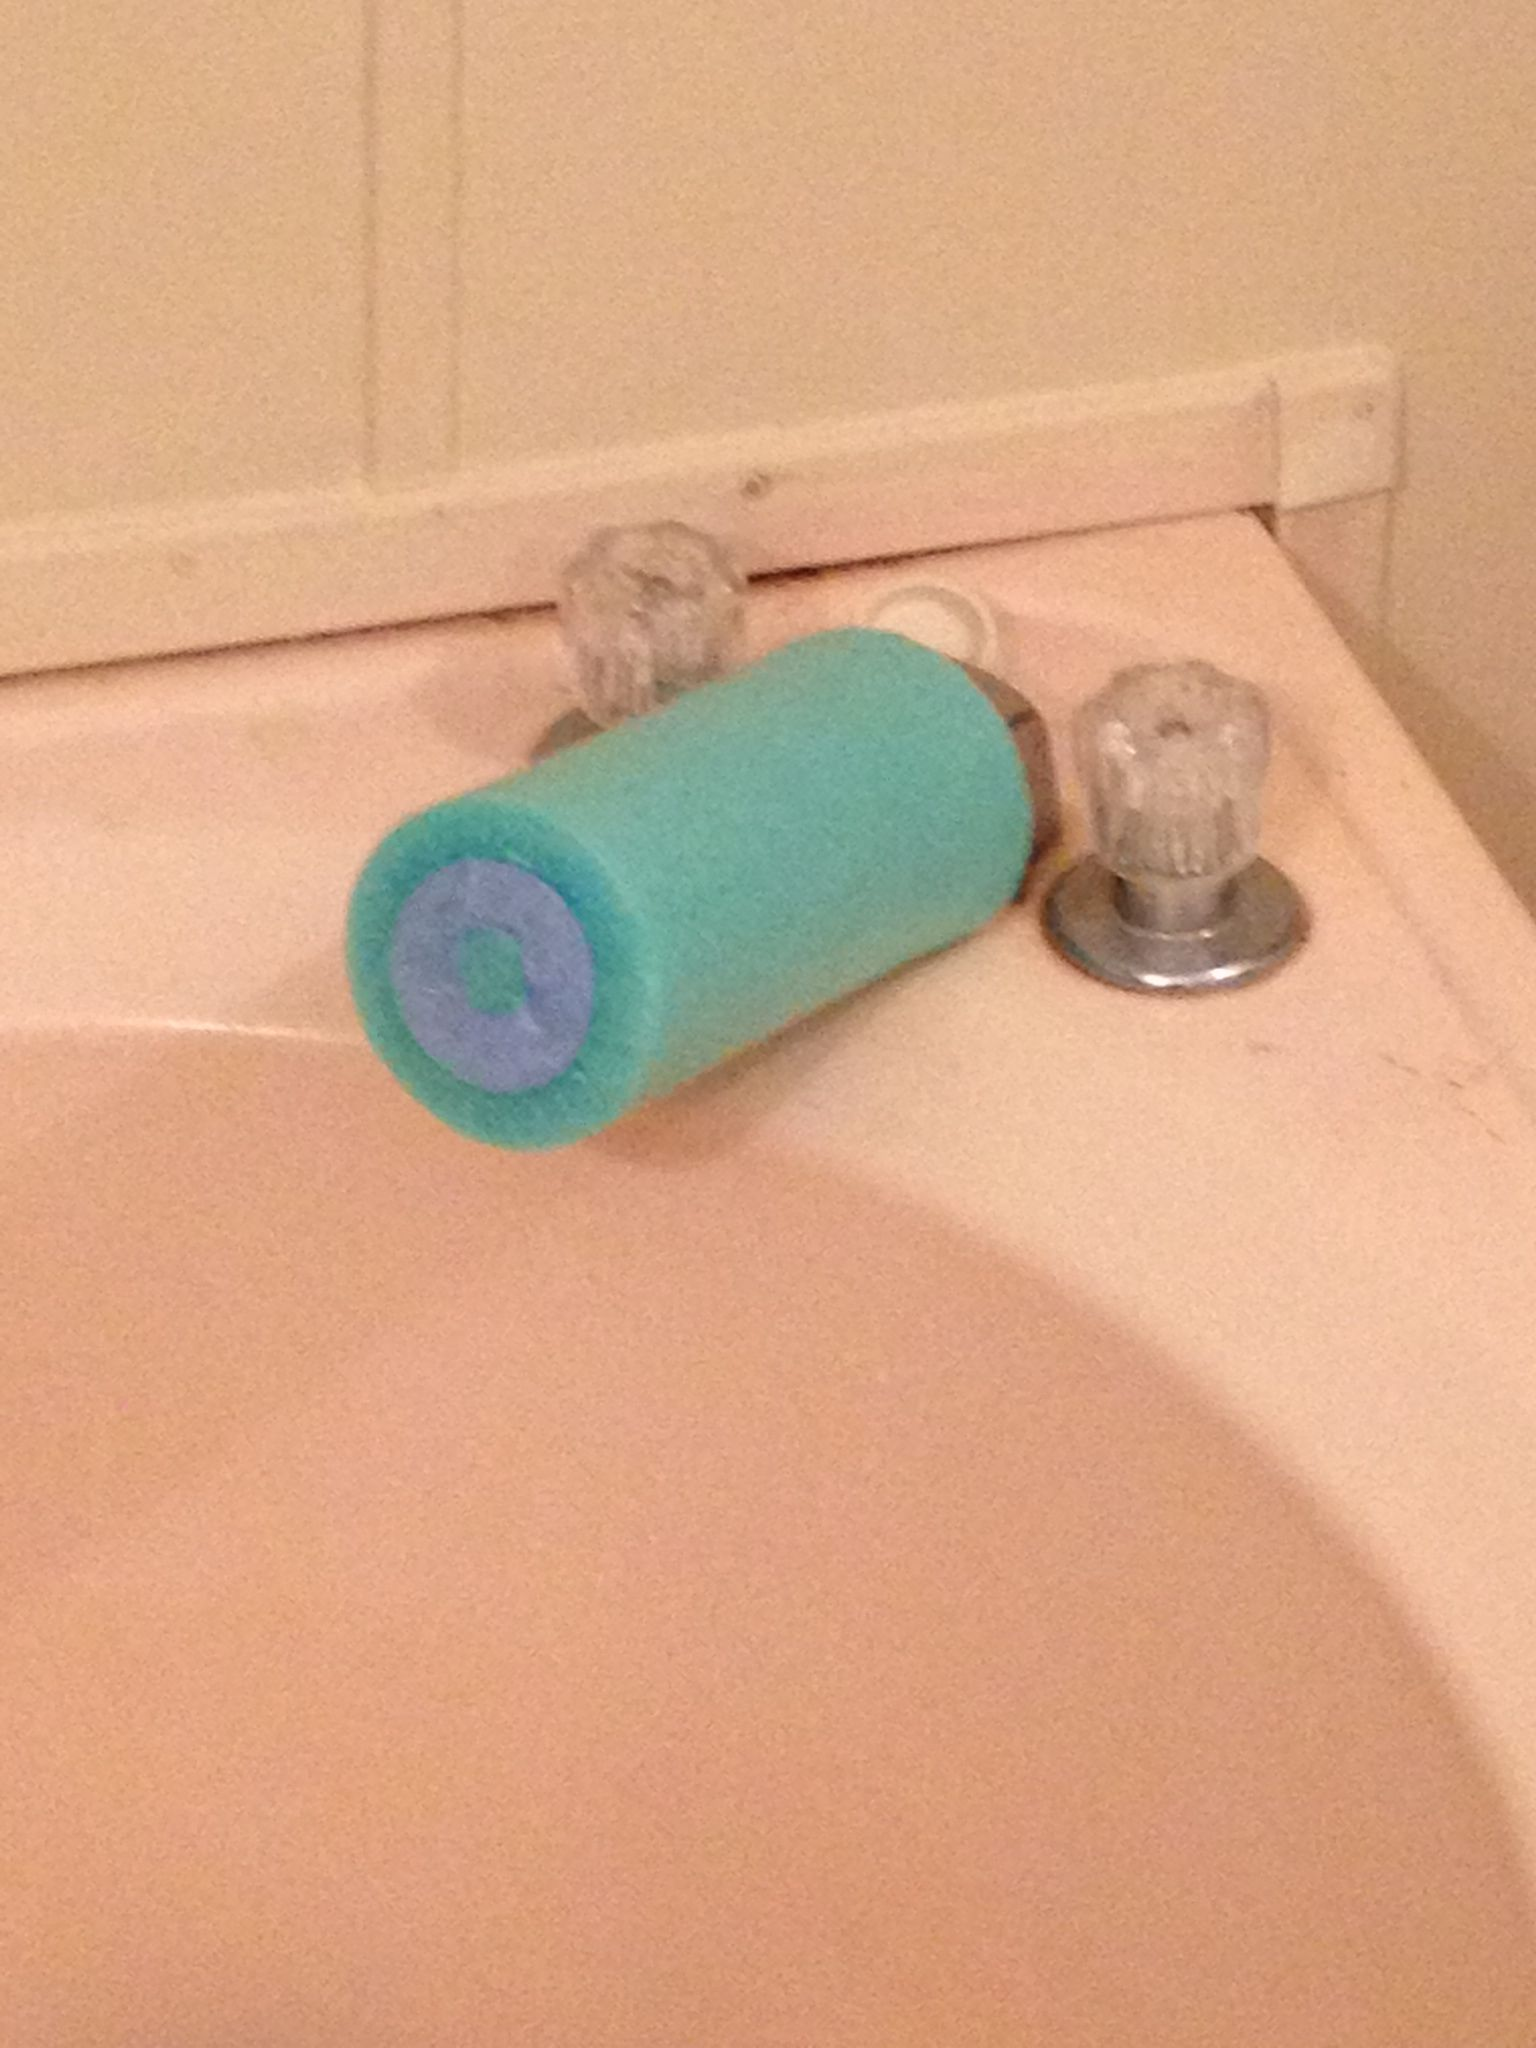 Bathtub Faucet Cover Made From Pool Noodle Hayden S Stuff